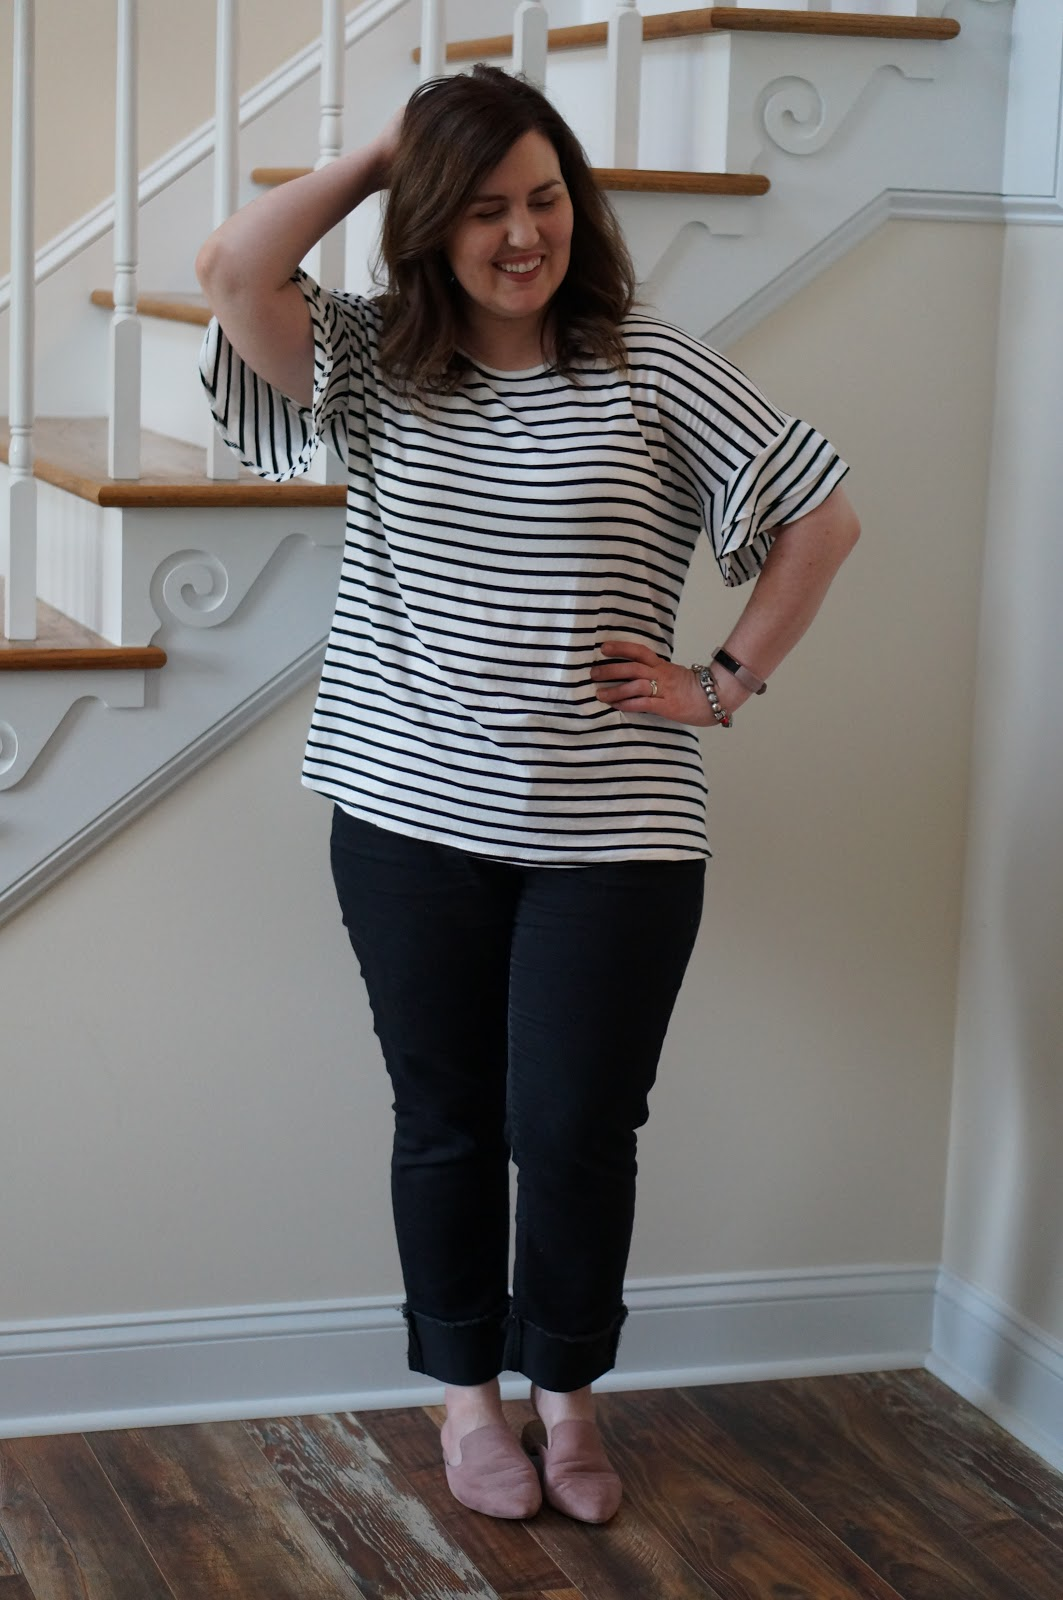 Popular North Carolina style blogger shares how to style a ruffle sleeve tee for work.  Click here to read it!